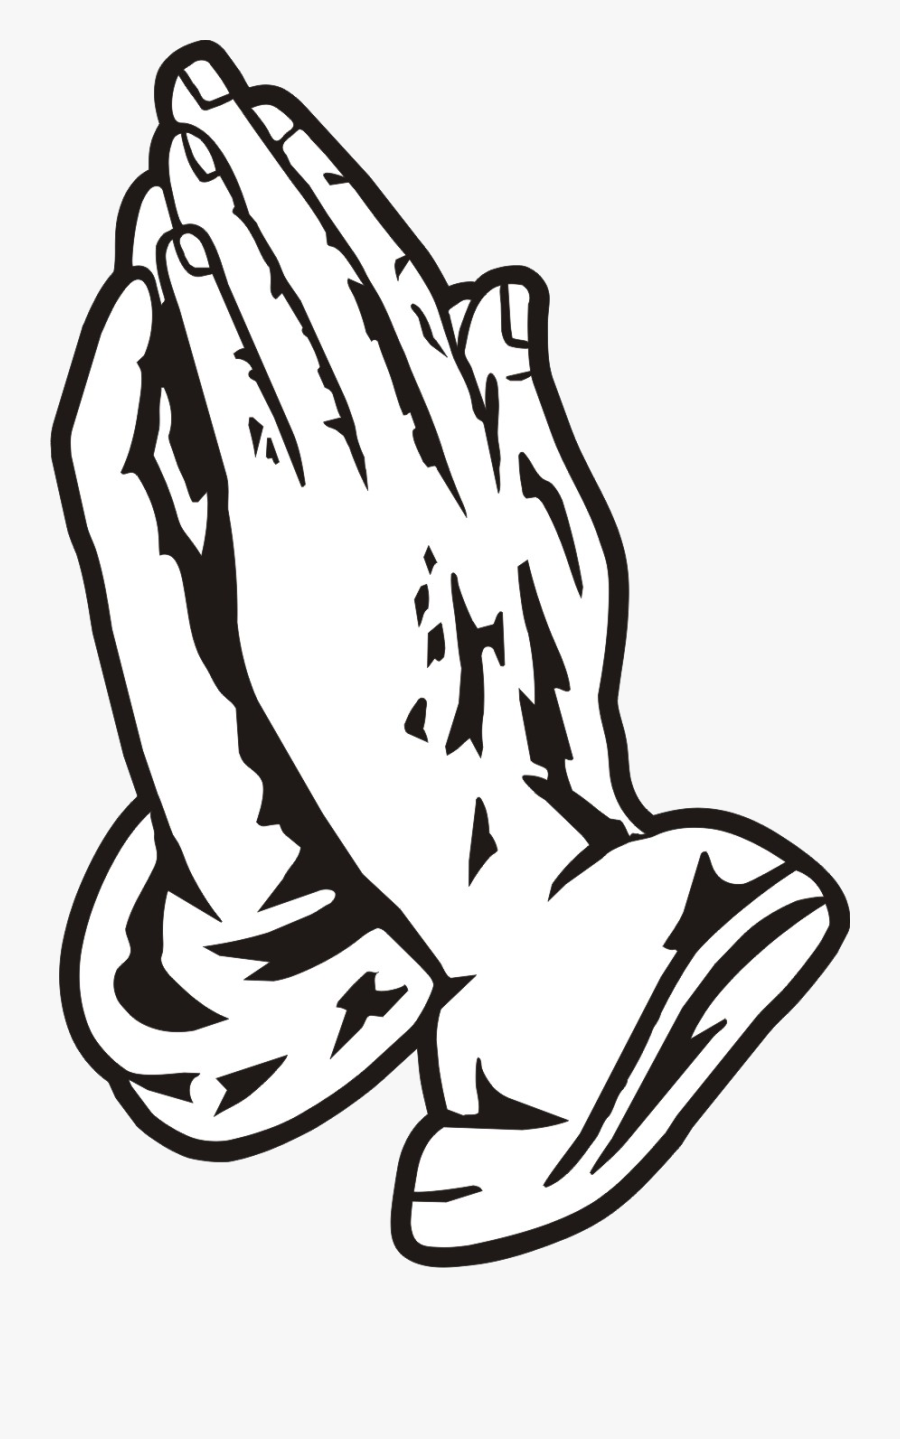 Praying Hands Black Clipart Free Images Transparent - Drake Praying Hands Drawing, Transparent Clipart